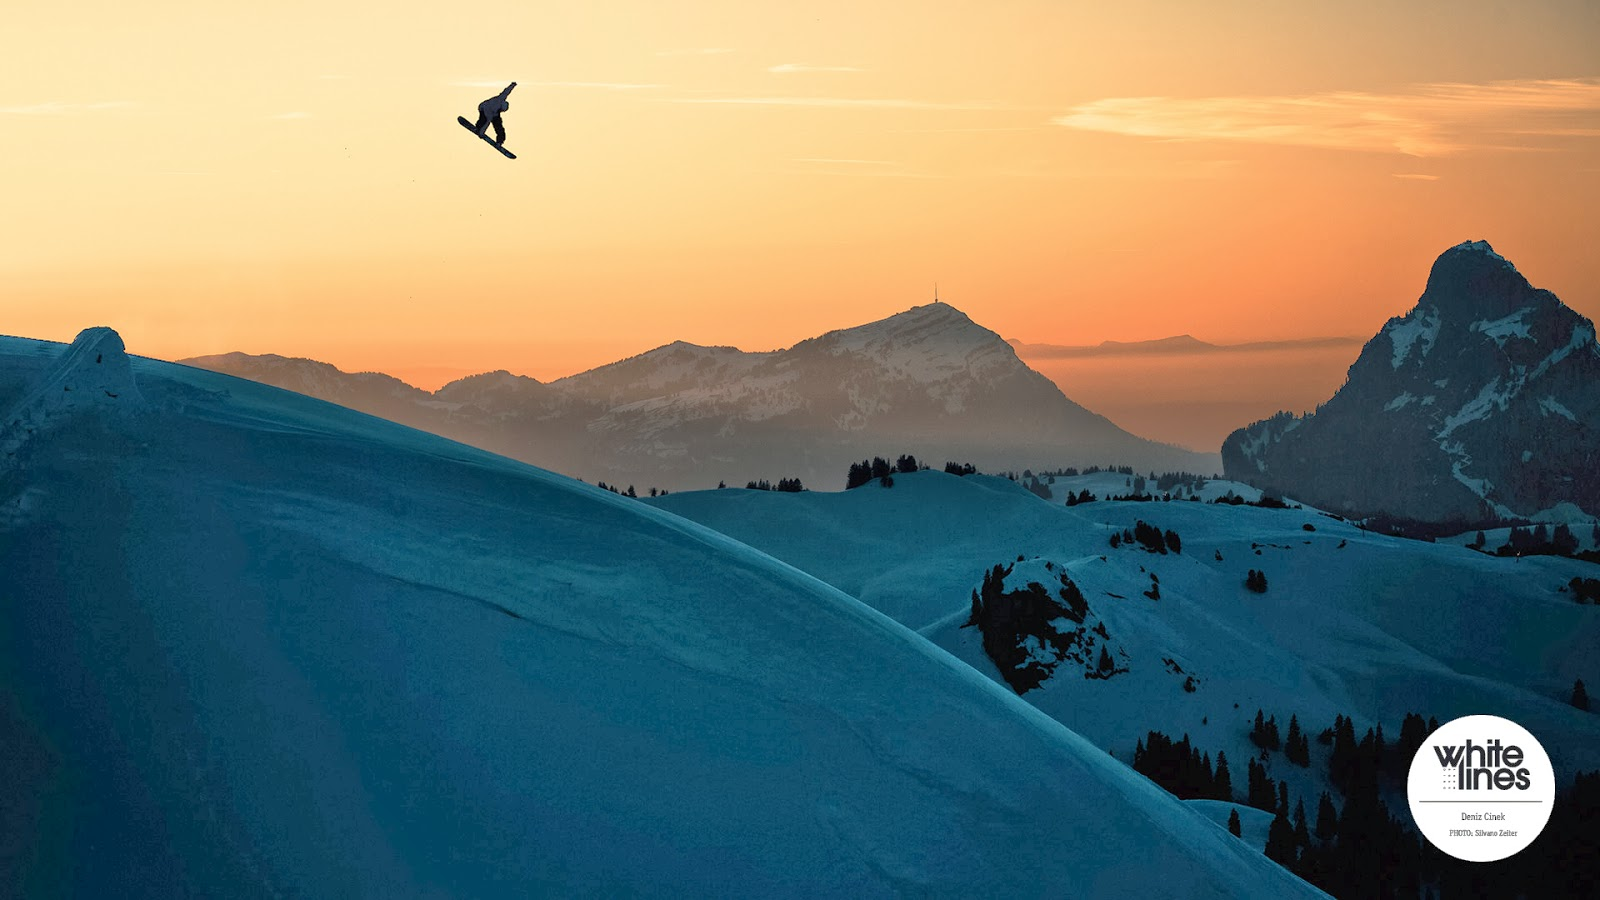 snowboarding wallpapers wallpaper-#40